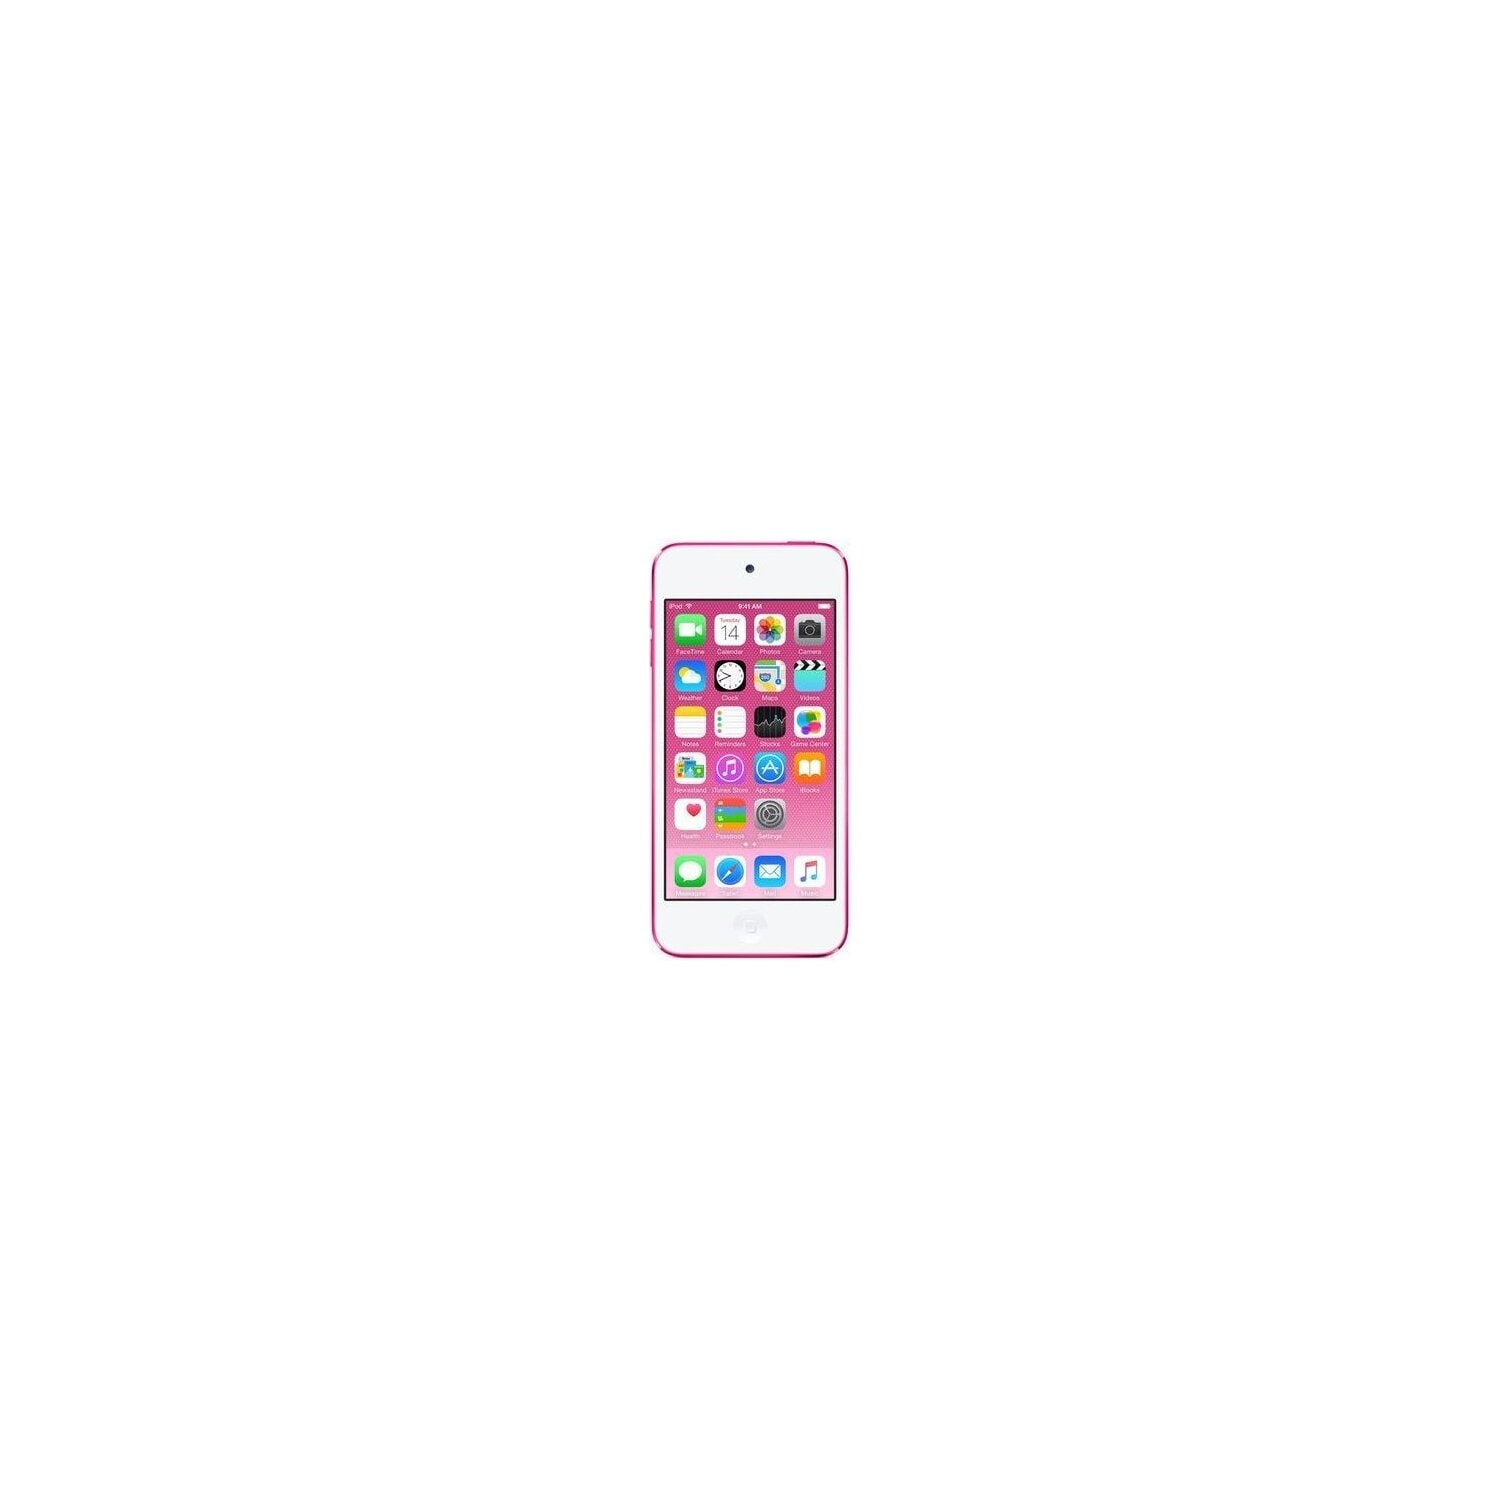 Odtwarzacz MP4 APPLE iPod touch 32GB (MKHQ2RP/A) Różowy